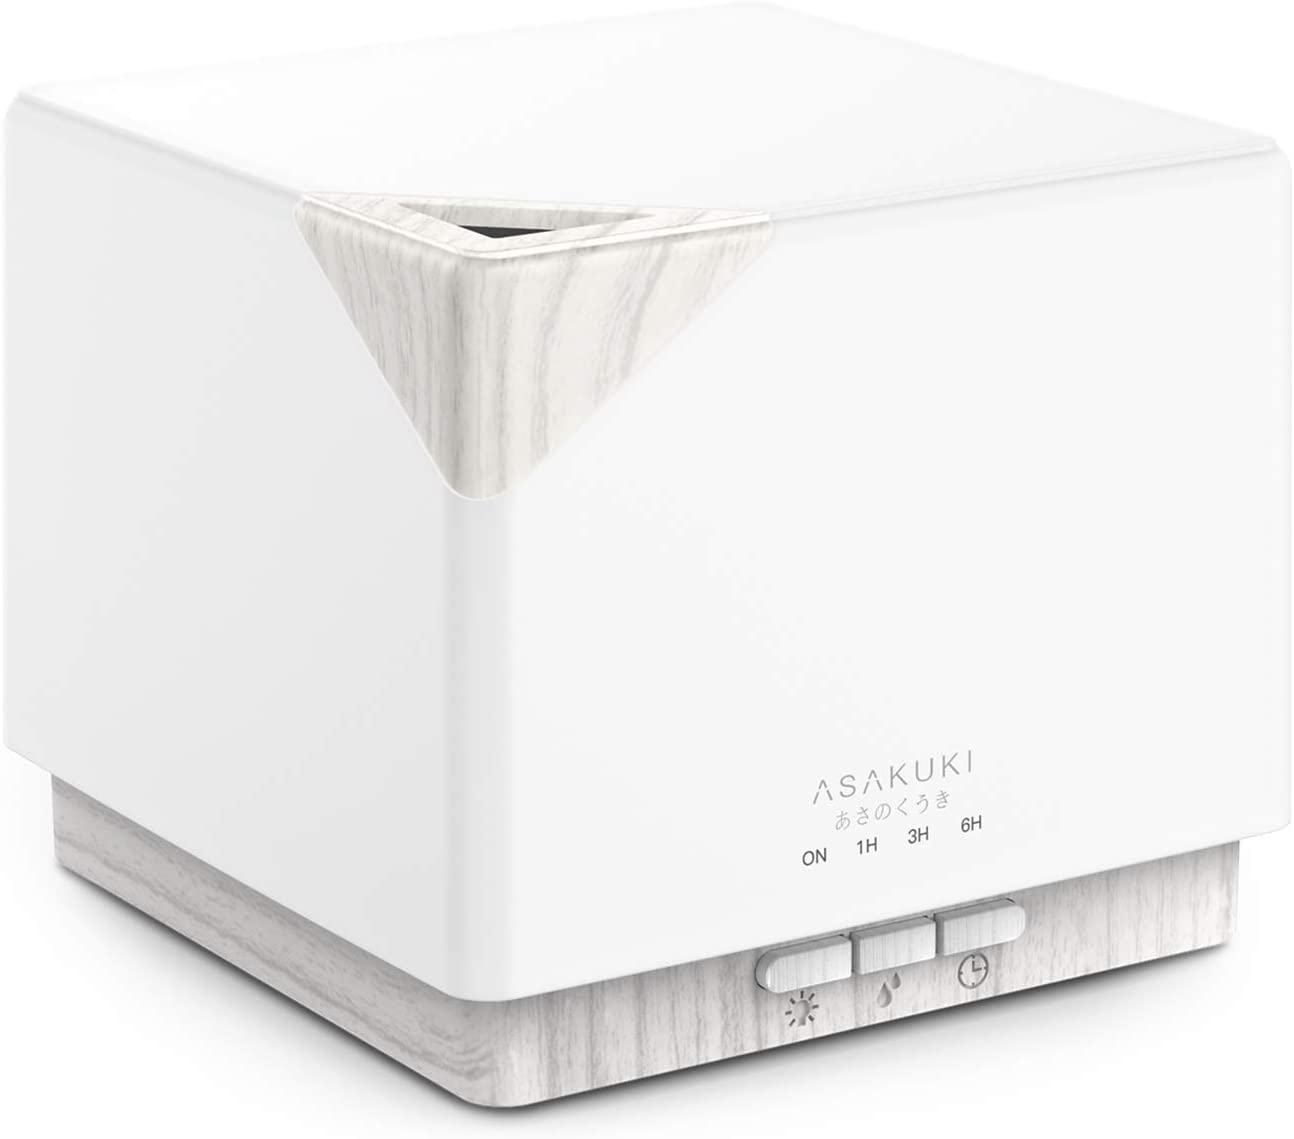 ASAKUKI 700ml Essential Oil Diffuser, Premium 5 in 1 Ultrasonic Aromatherapy Fragrant Oil Vaporizer Humidifier, Timer and Auto Off Safety Switch, 7